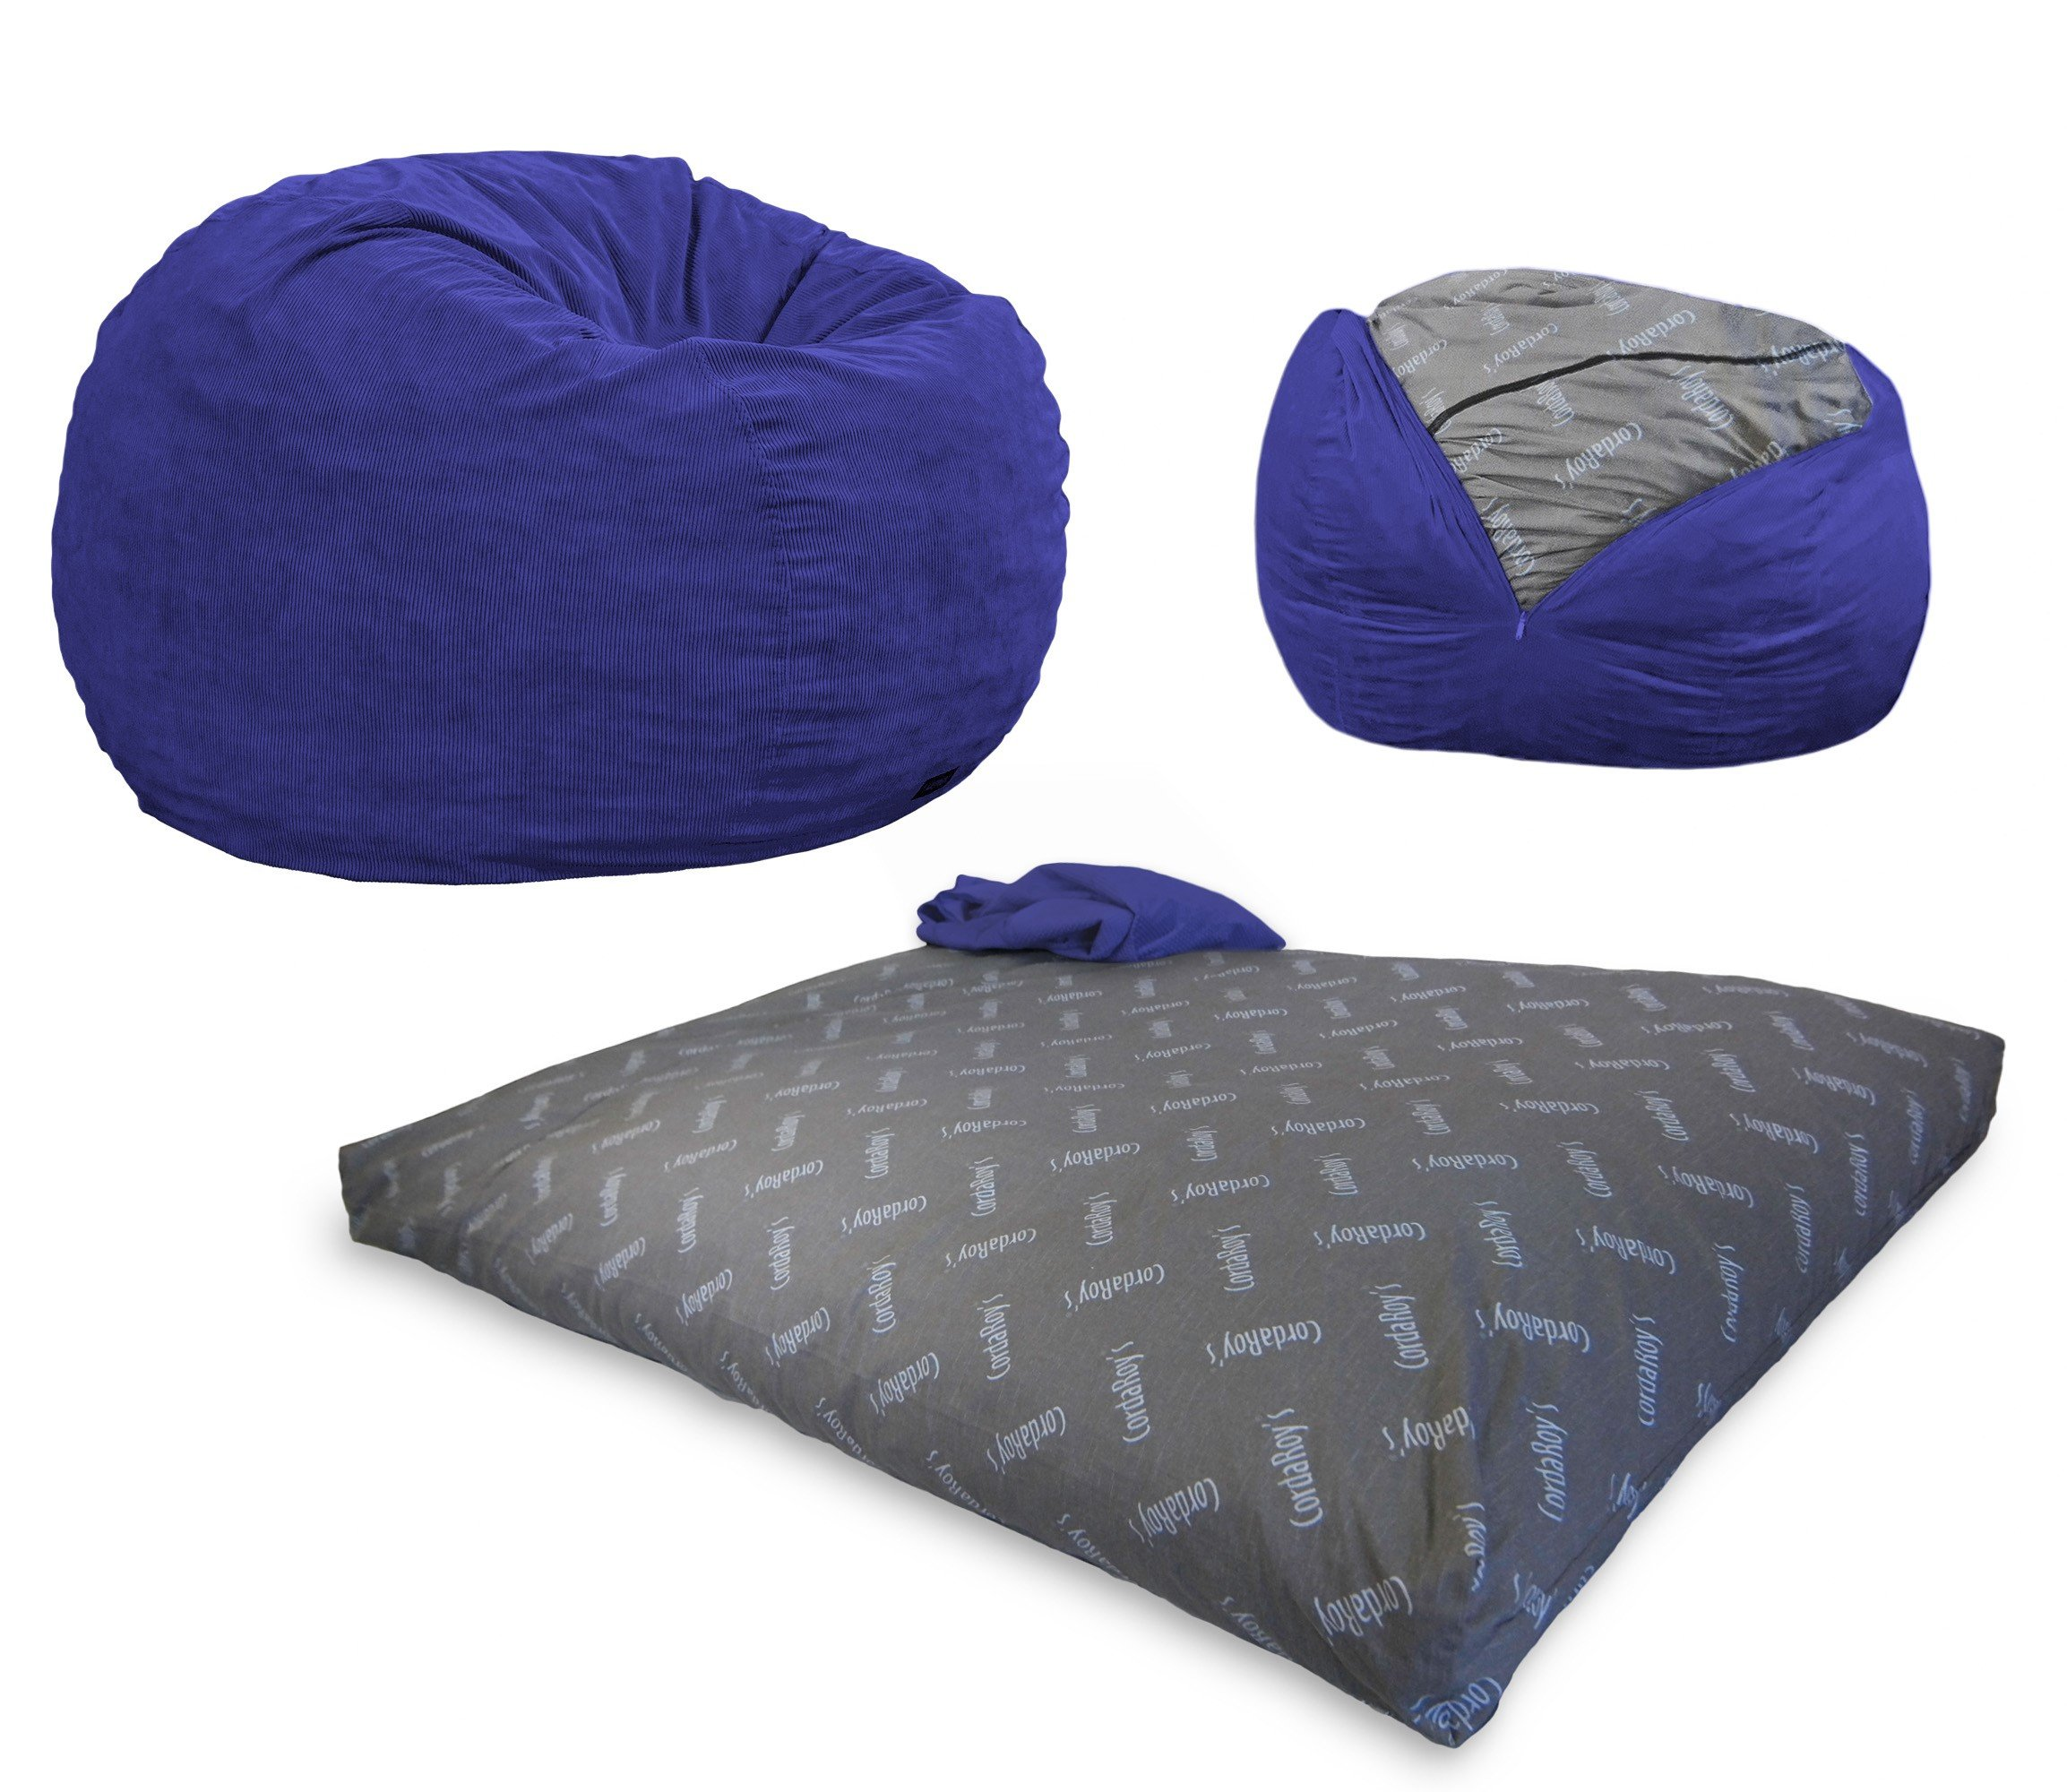 CordaRoy's Bean Bag Chair, Corduroy Convertible Chair Folds from Bean Bag to Bed, As Seen on Shark Tank - Navy, Queen Size by CordaRoy's